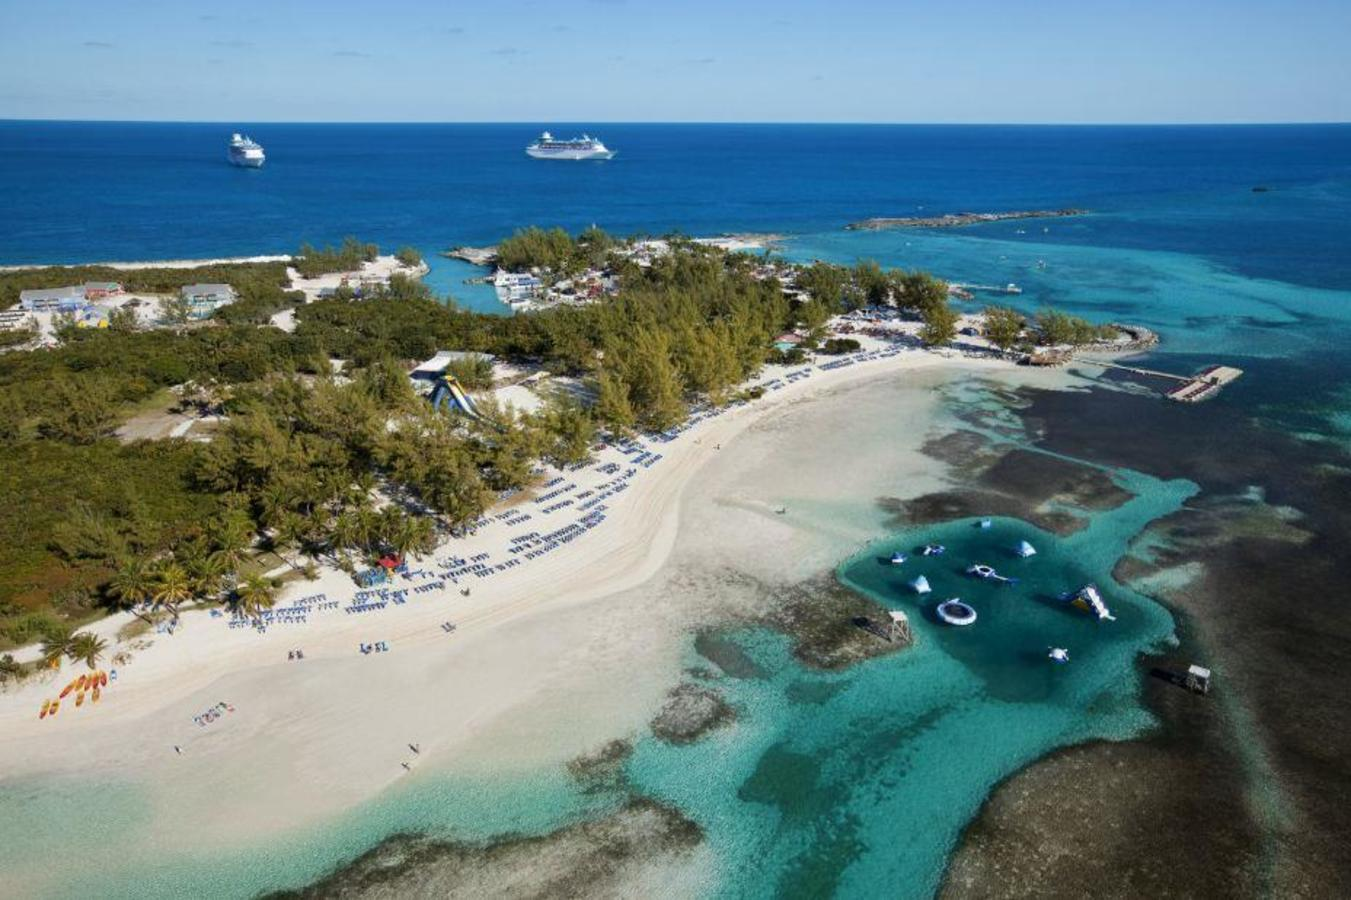 CocoCay, Our Private Destination